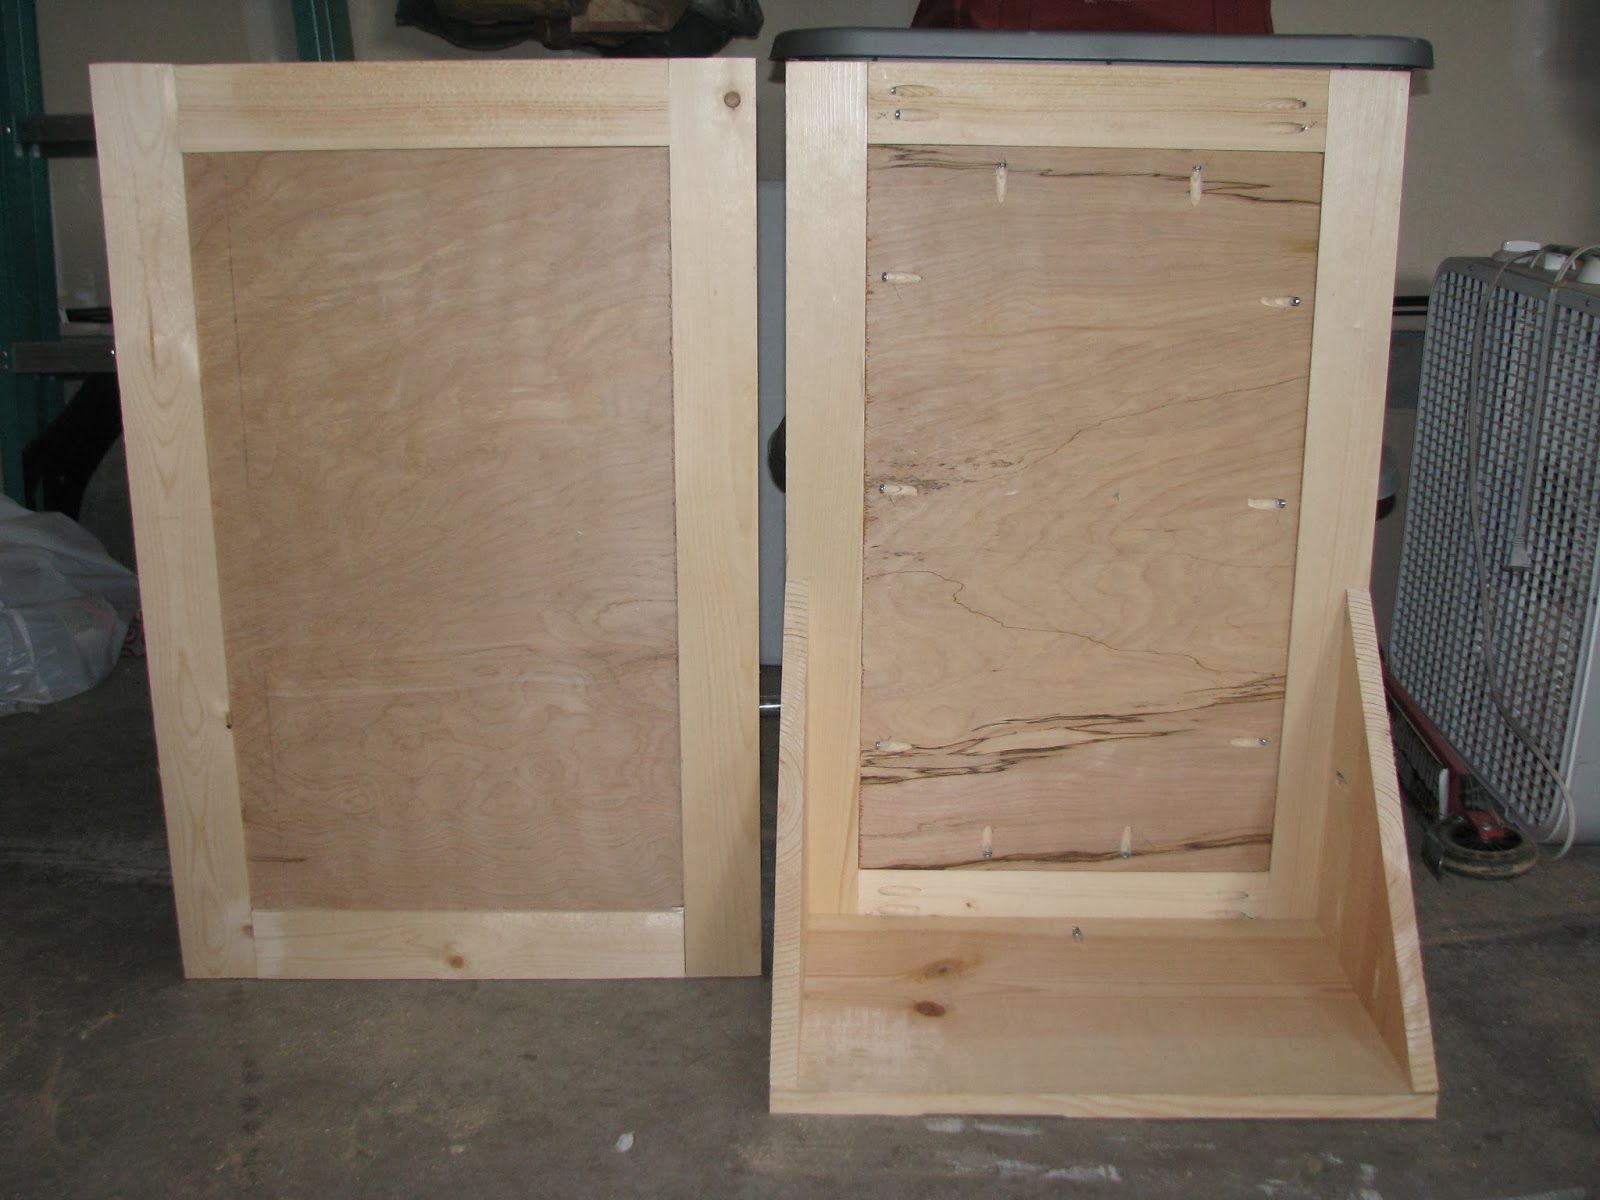 My So-Called DIY Blog: Making Cabinet Doors Using a Kreg Jig